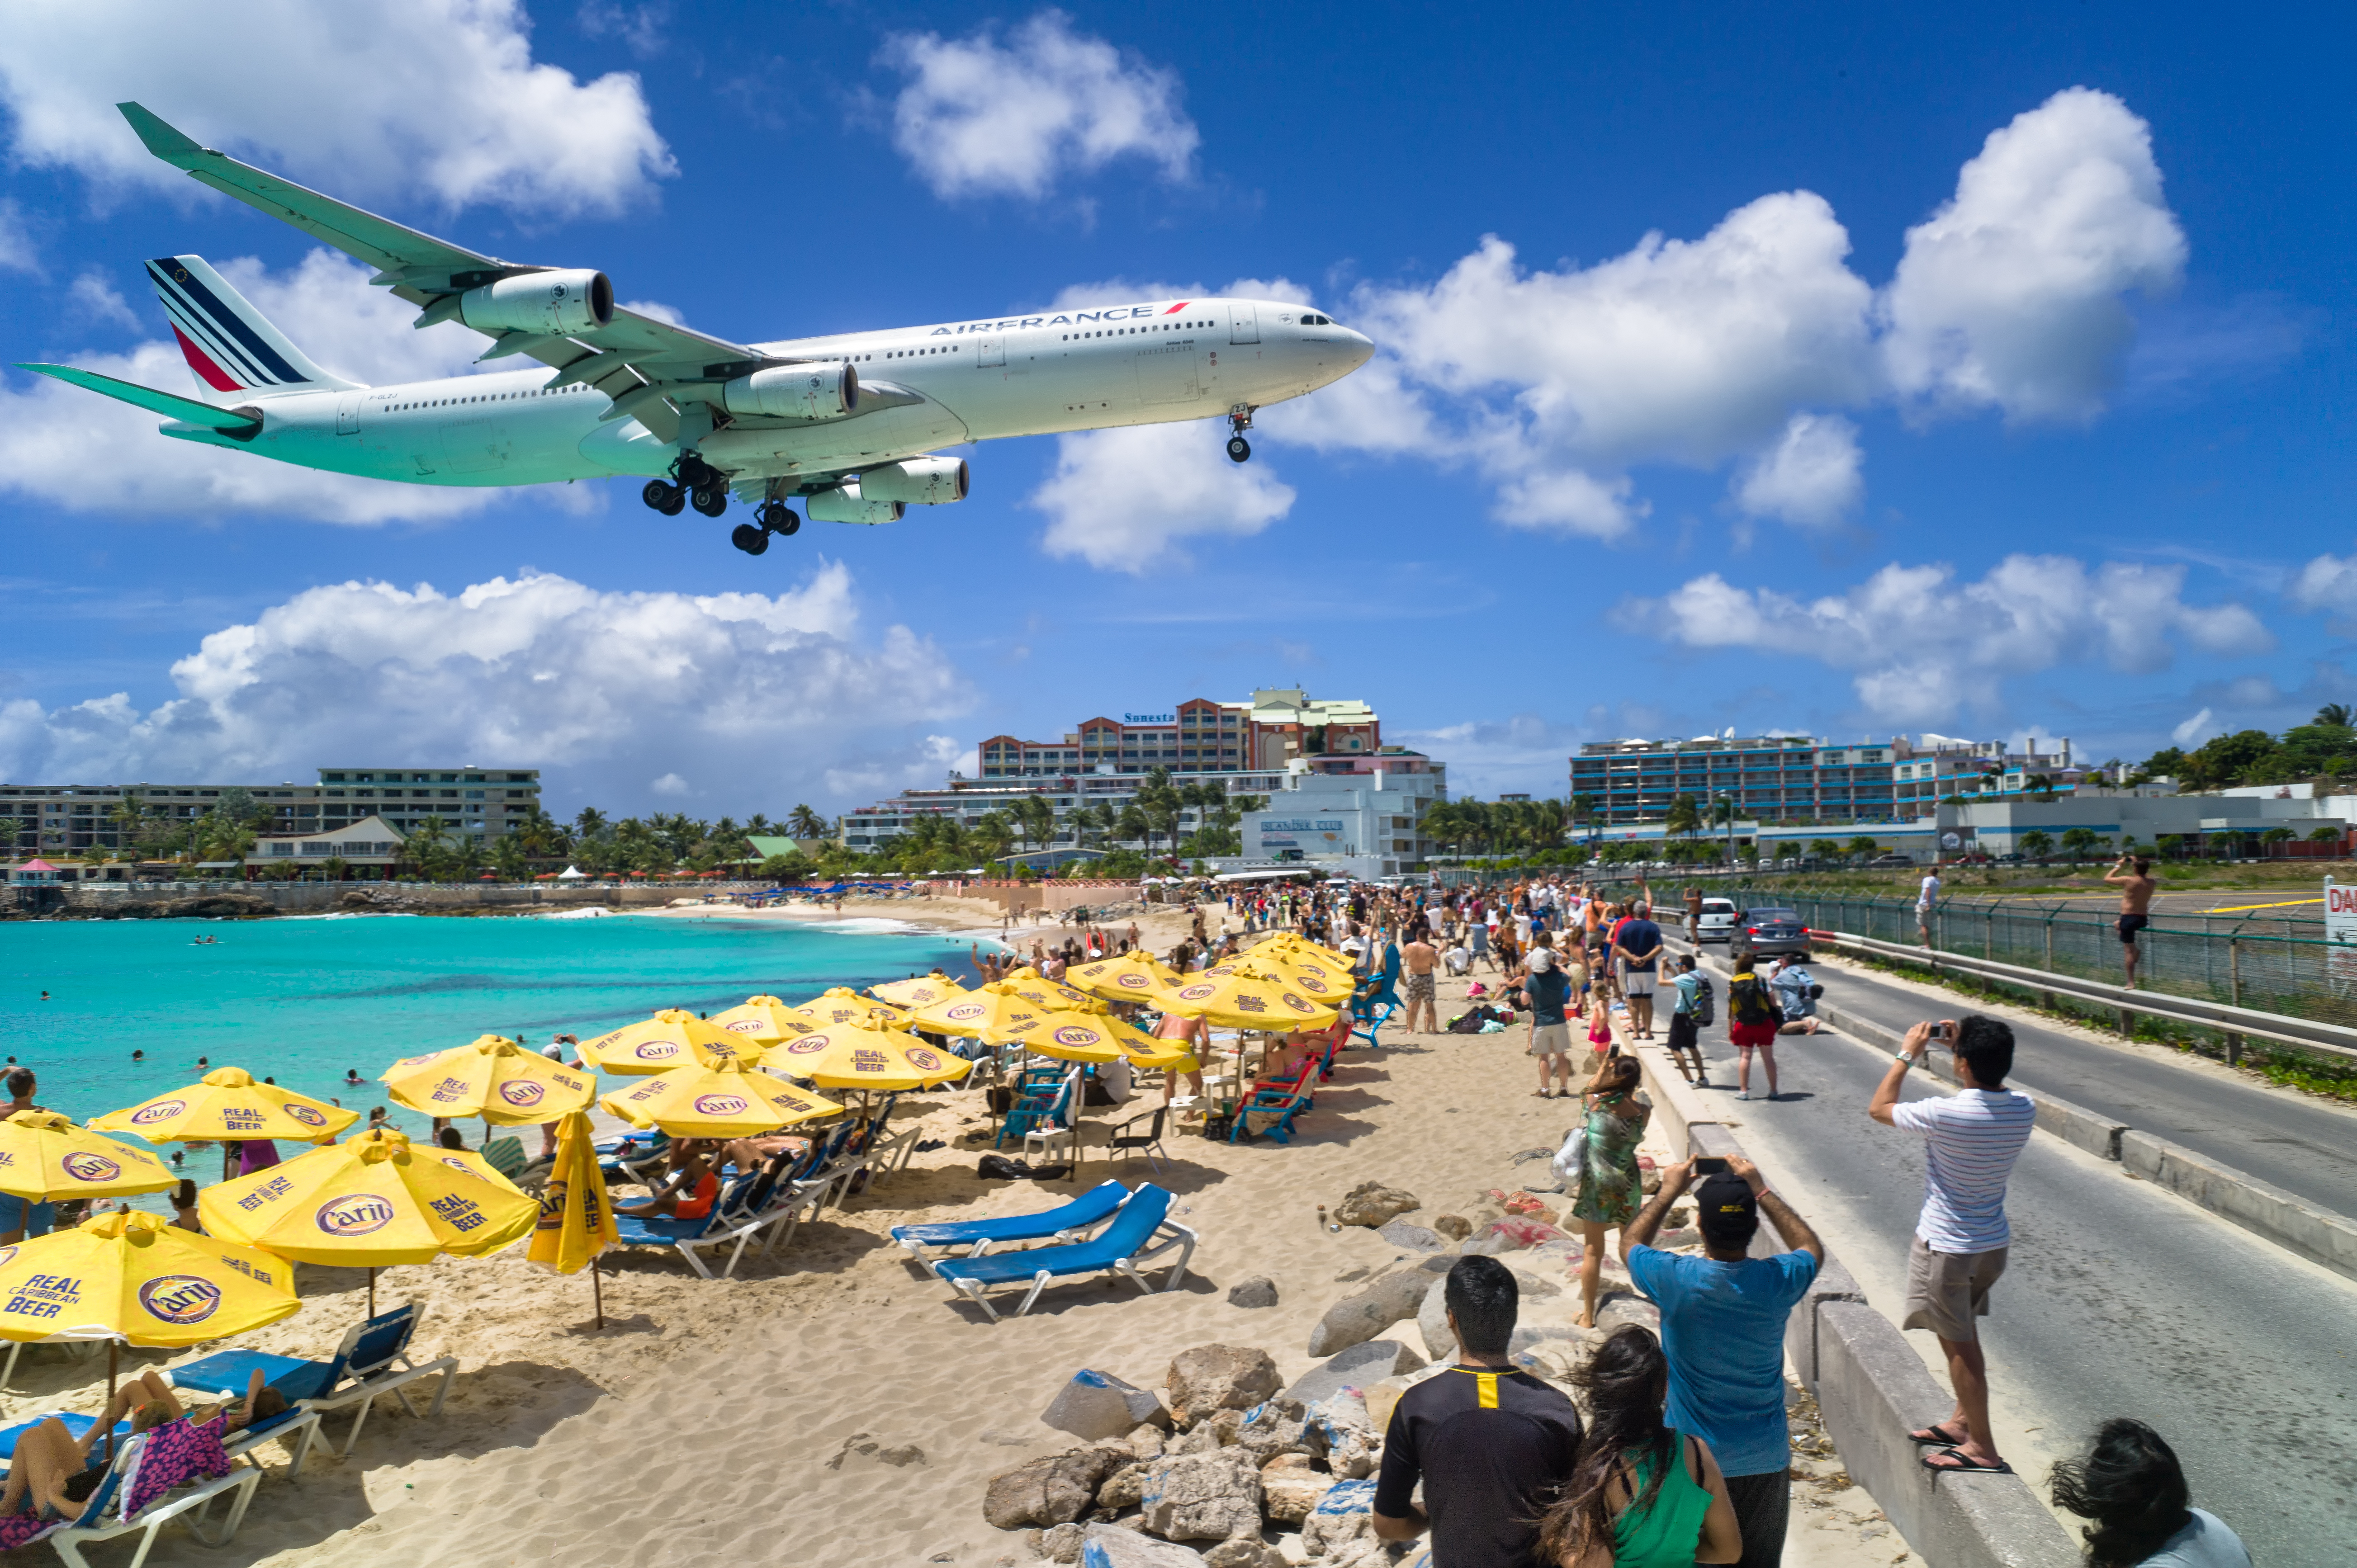 A commercial airline landing at the Princess Juliana International Airport in St Maarten.